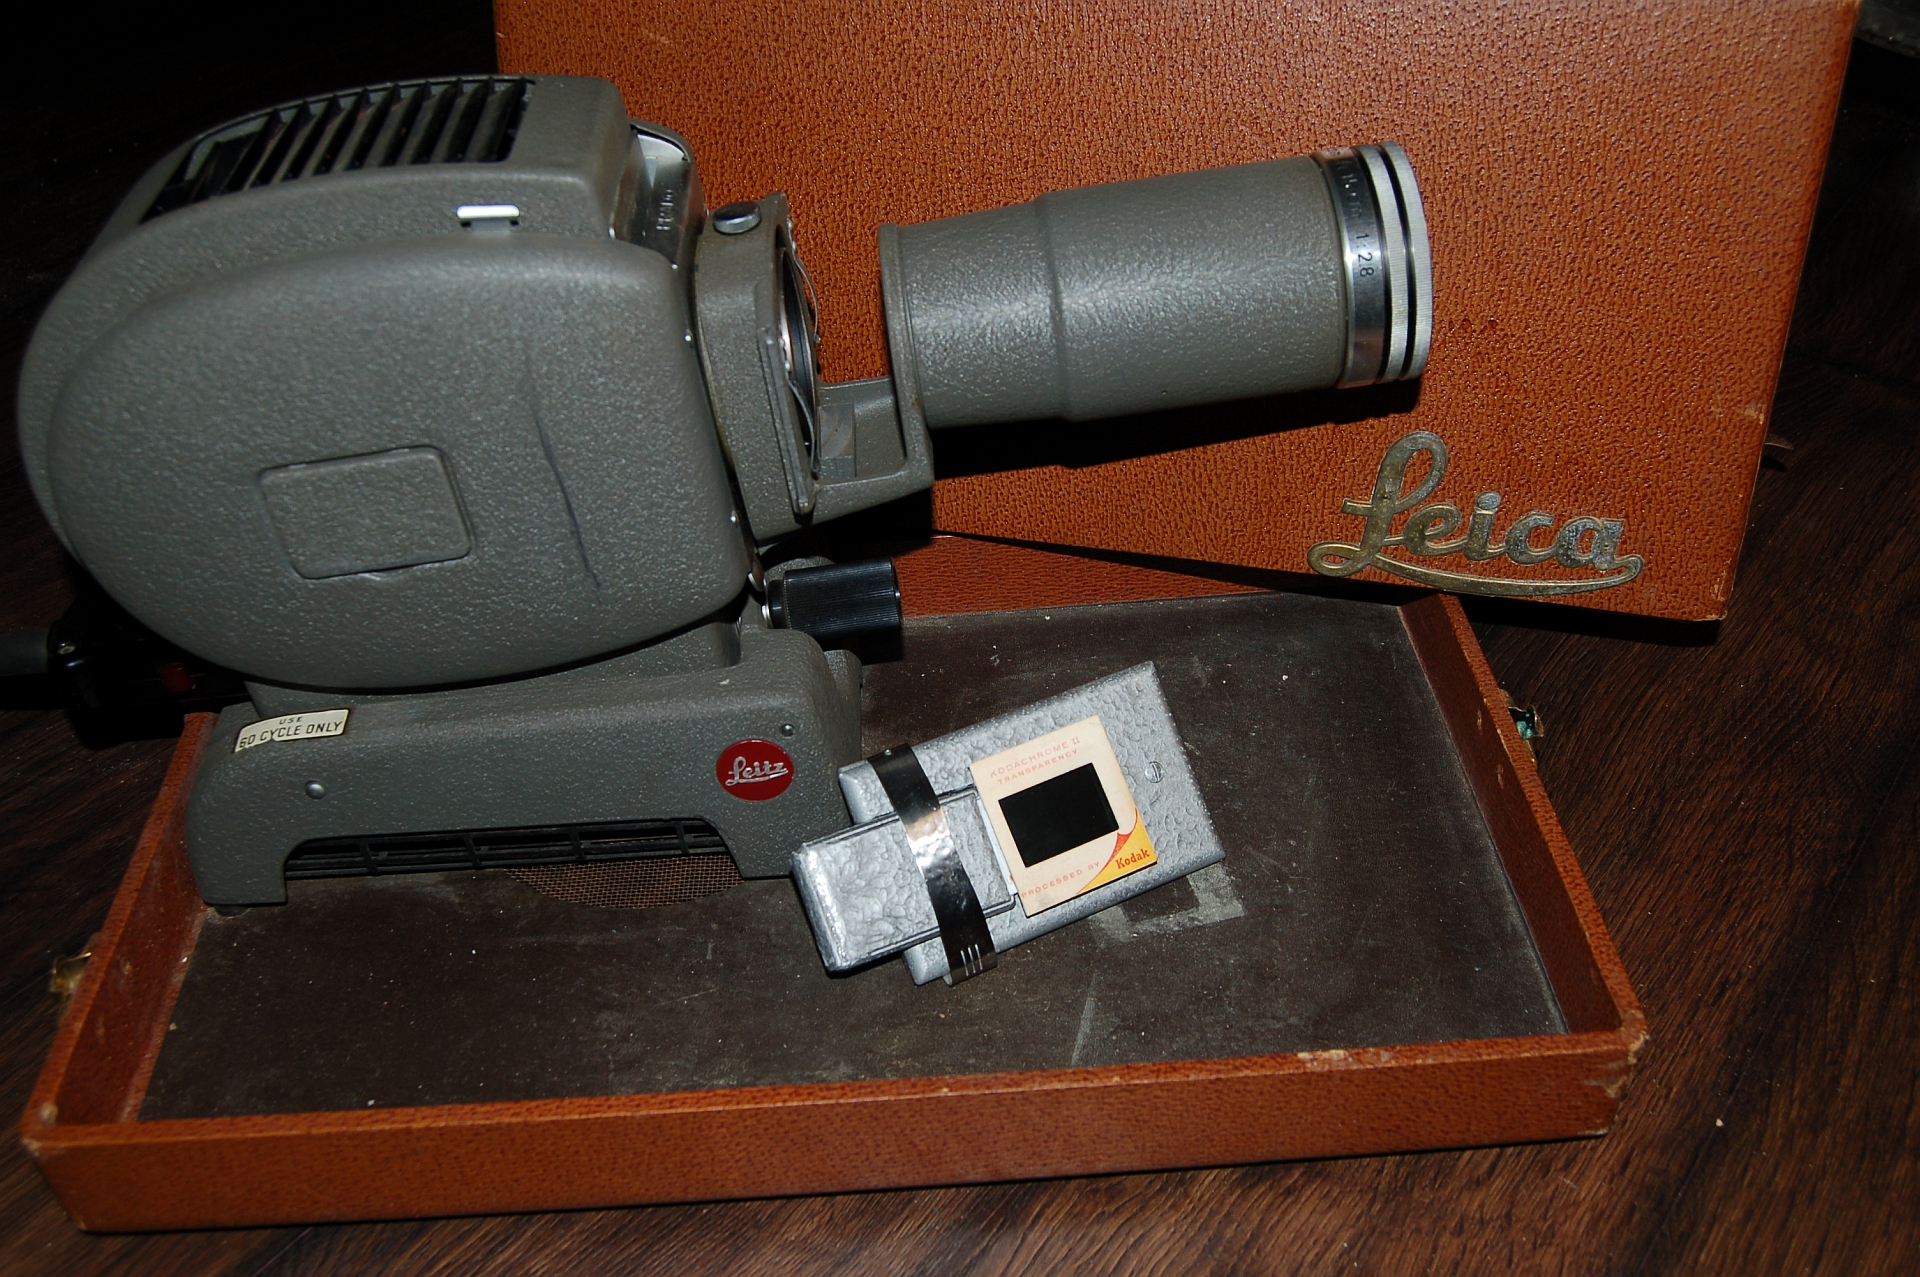 1950's Leica Slide Projector LCD conversion for under $30